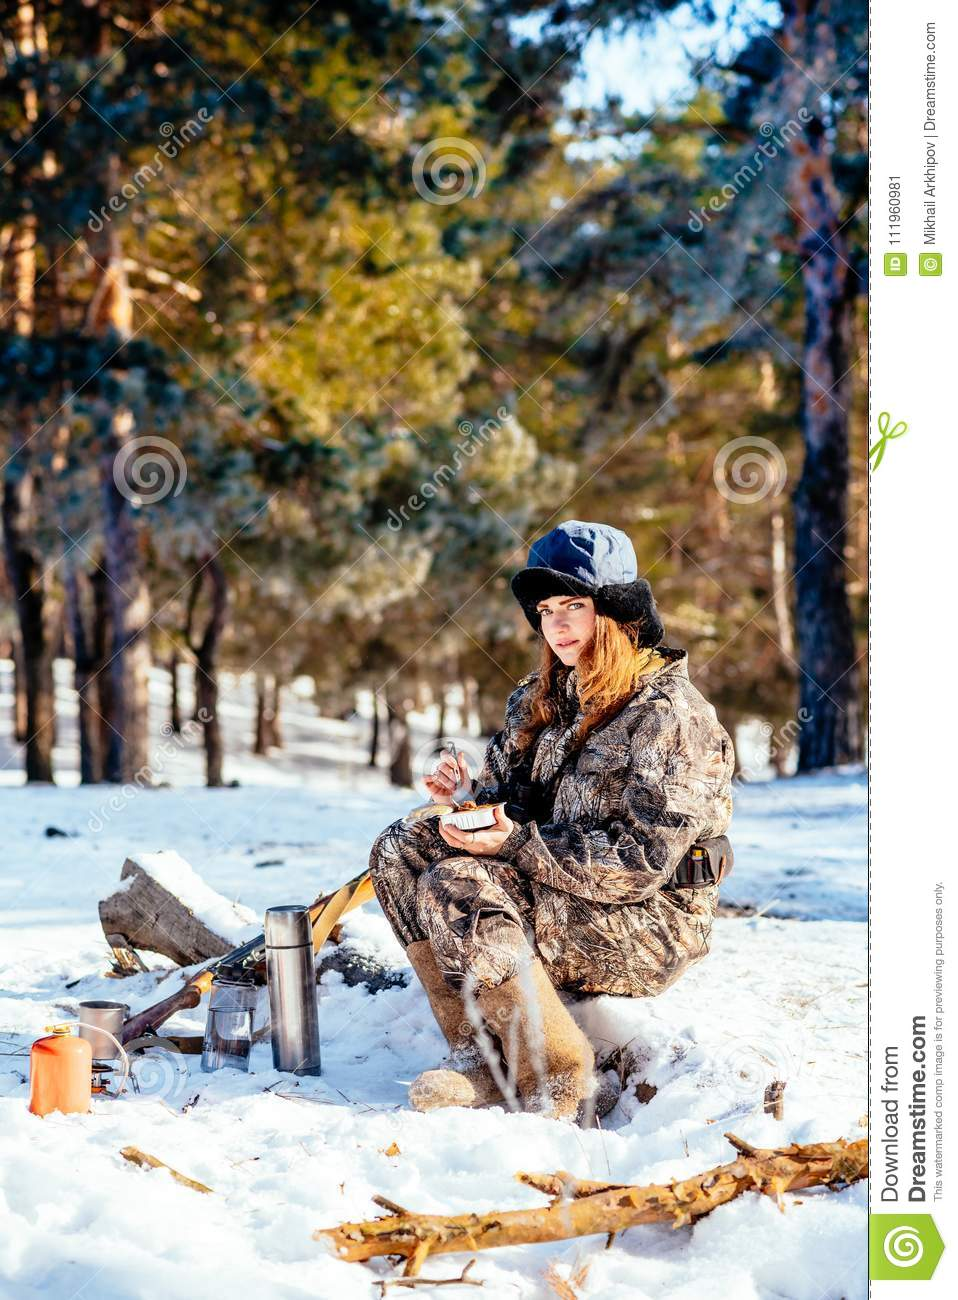 Female hunter preparing food with a portable gas burner in a win